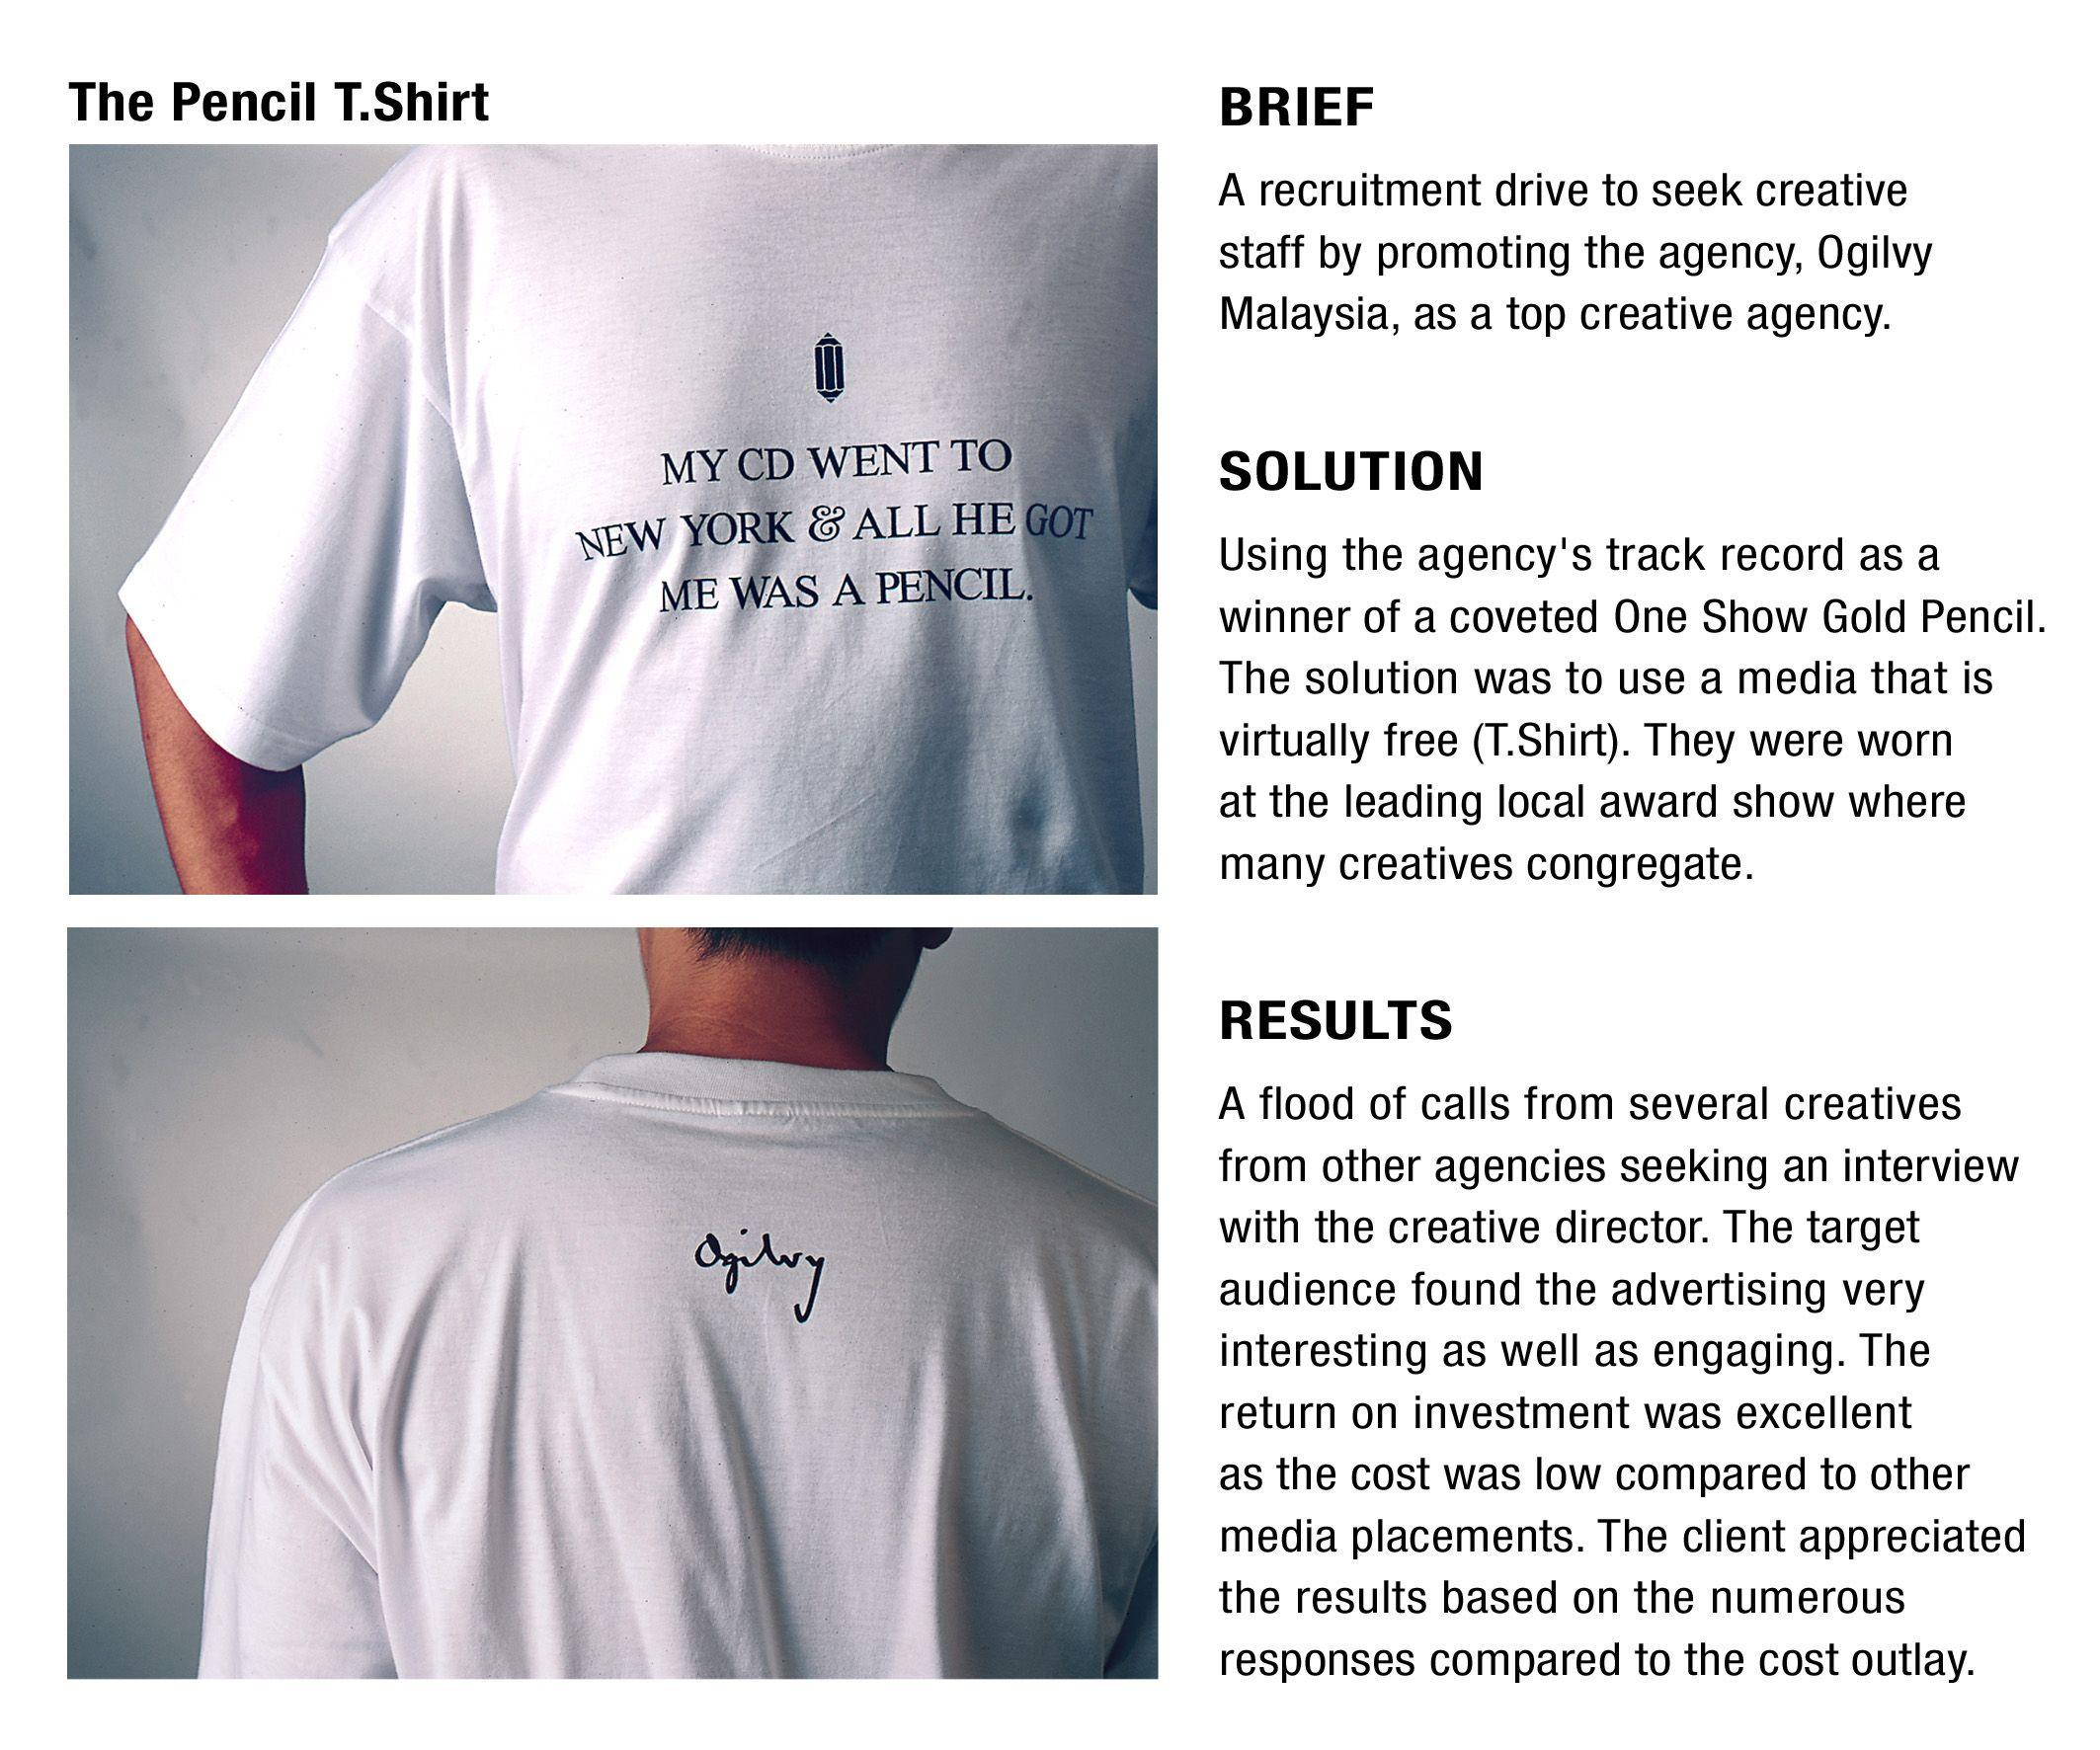 ogilvy mather malaysia advertising agency pencil t shirt - Ogilvy Mather Ad Agency